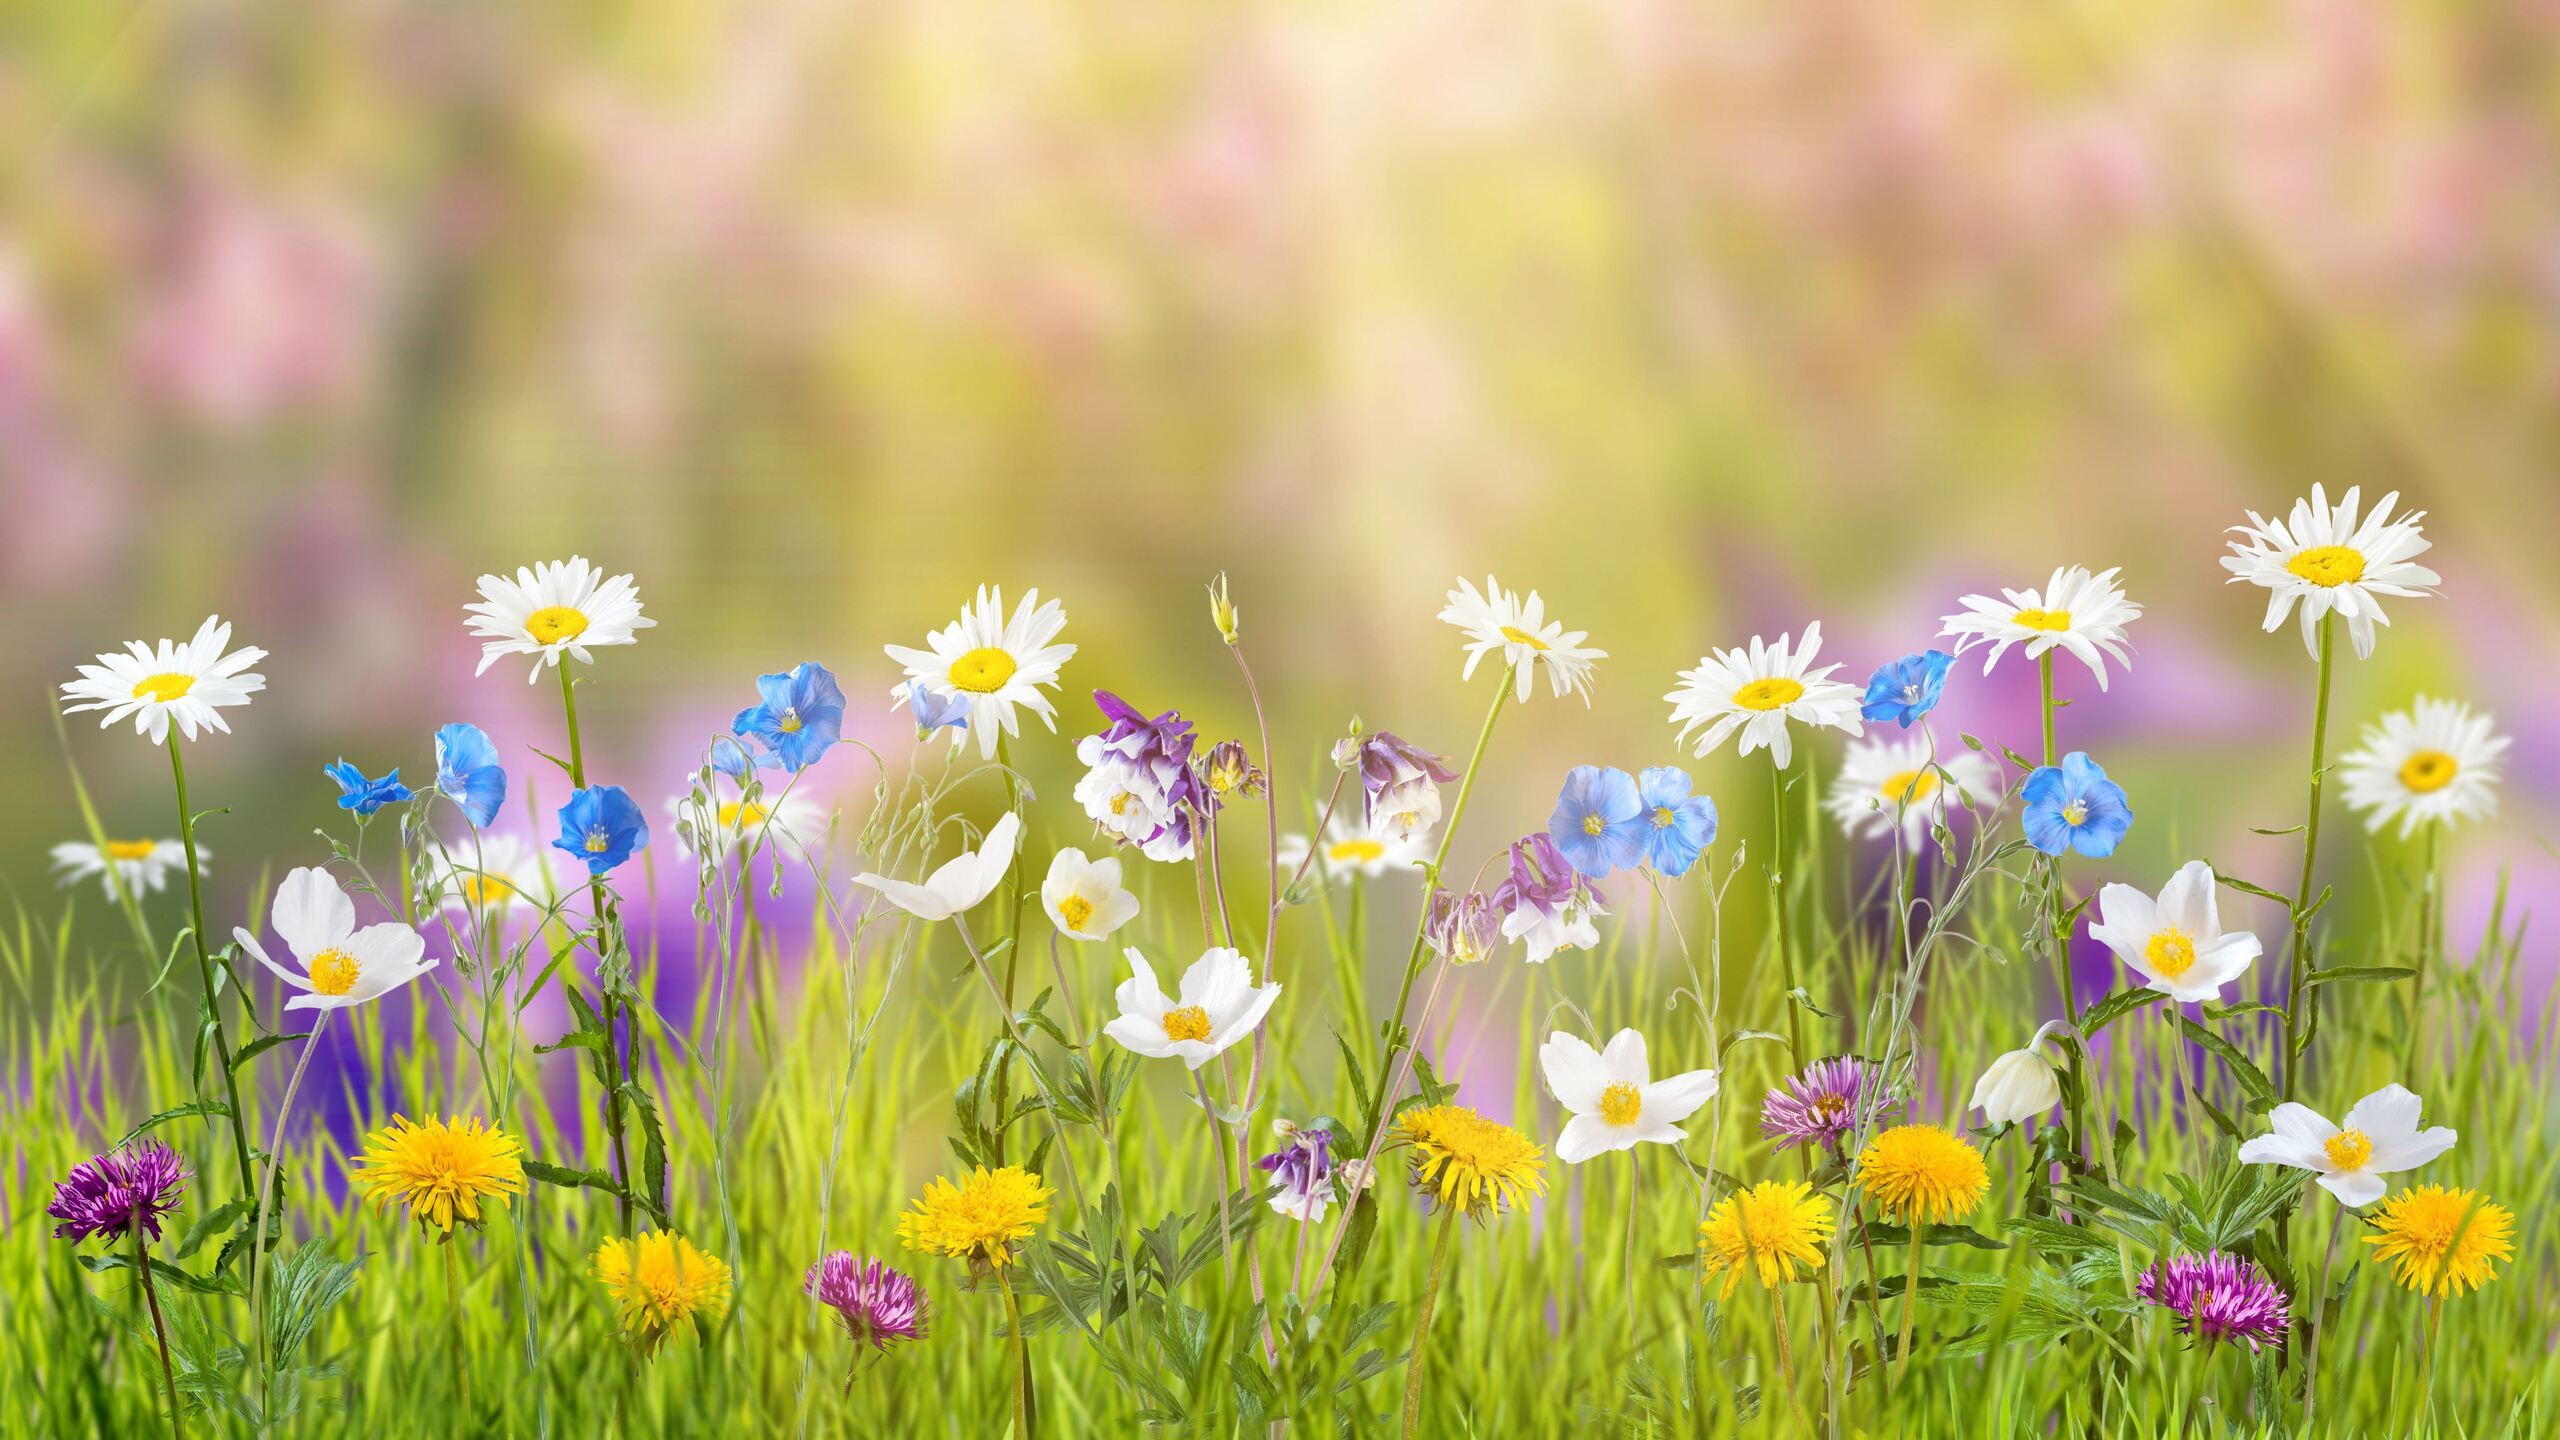 2560x1440 Spring 1440p Resolution Hd 4k Wallpapers Images